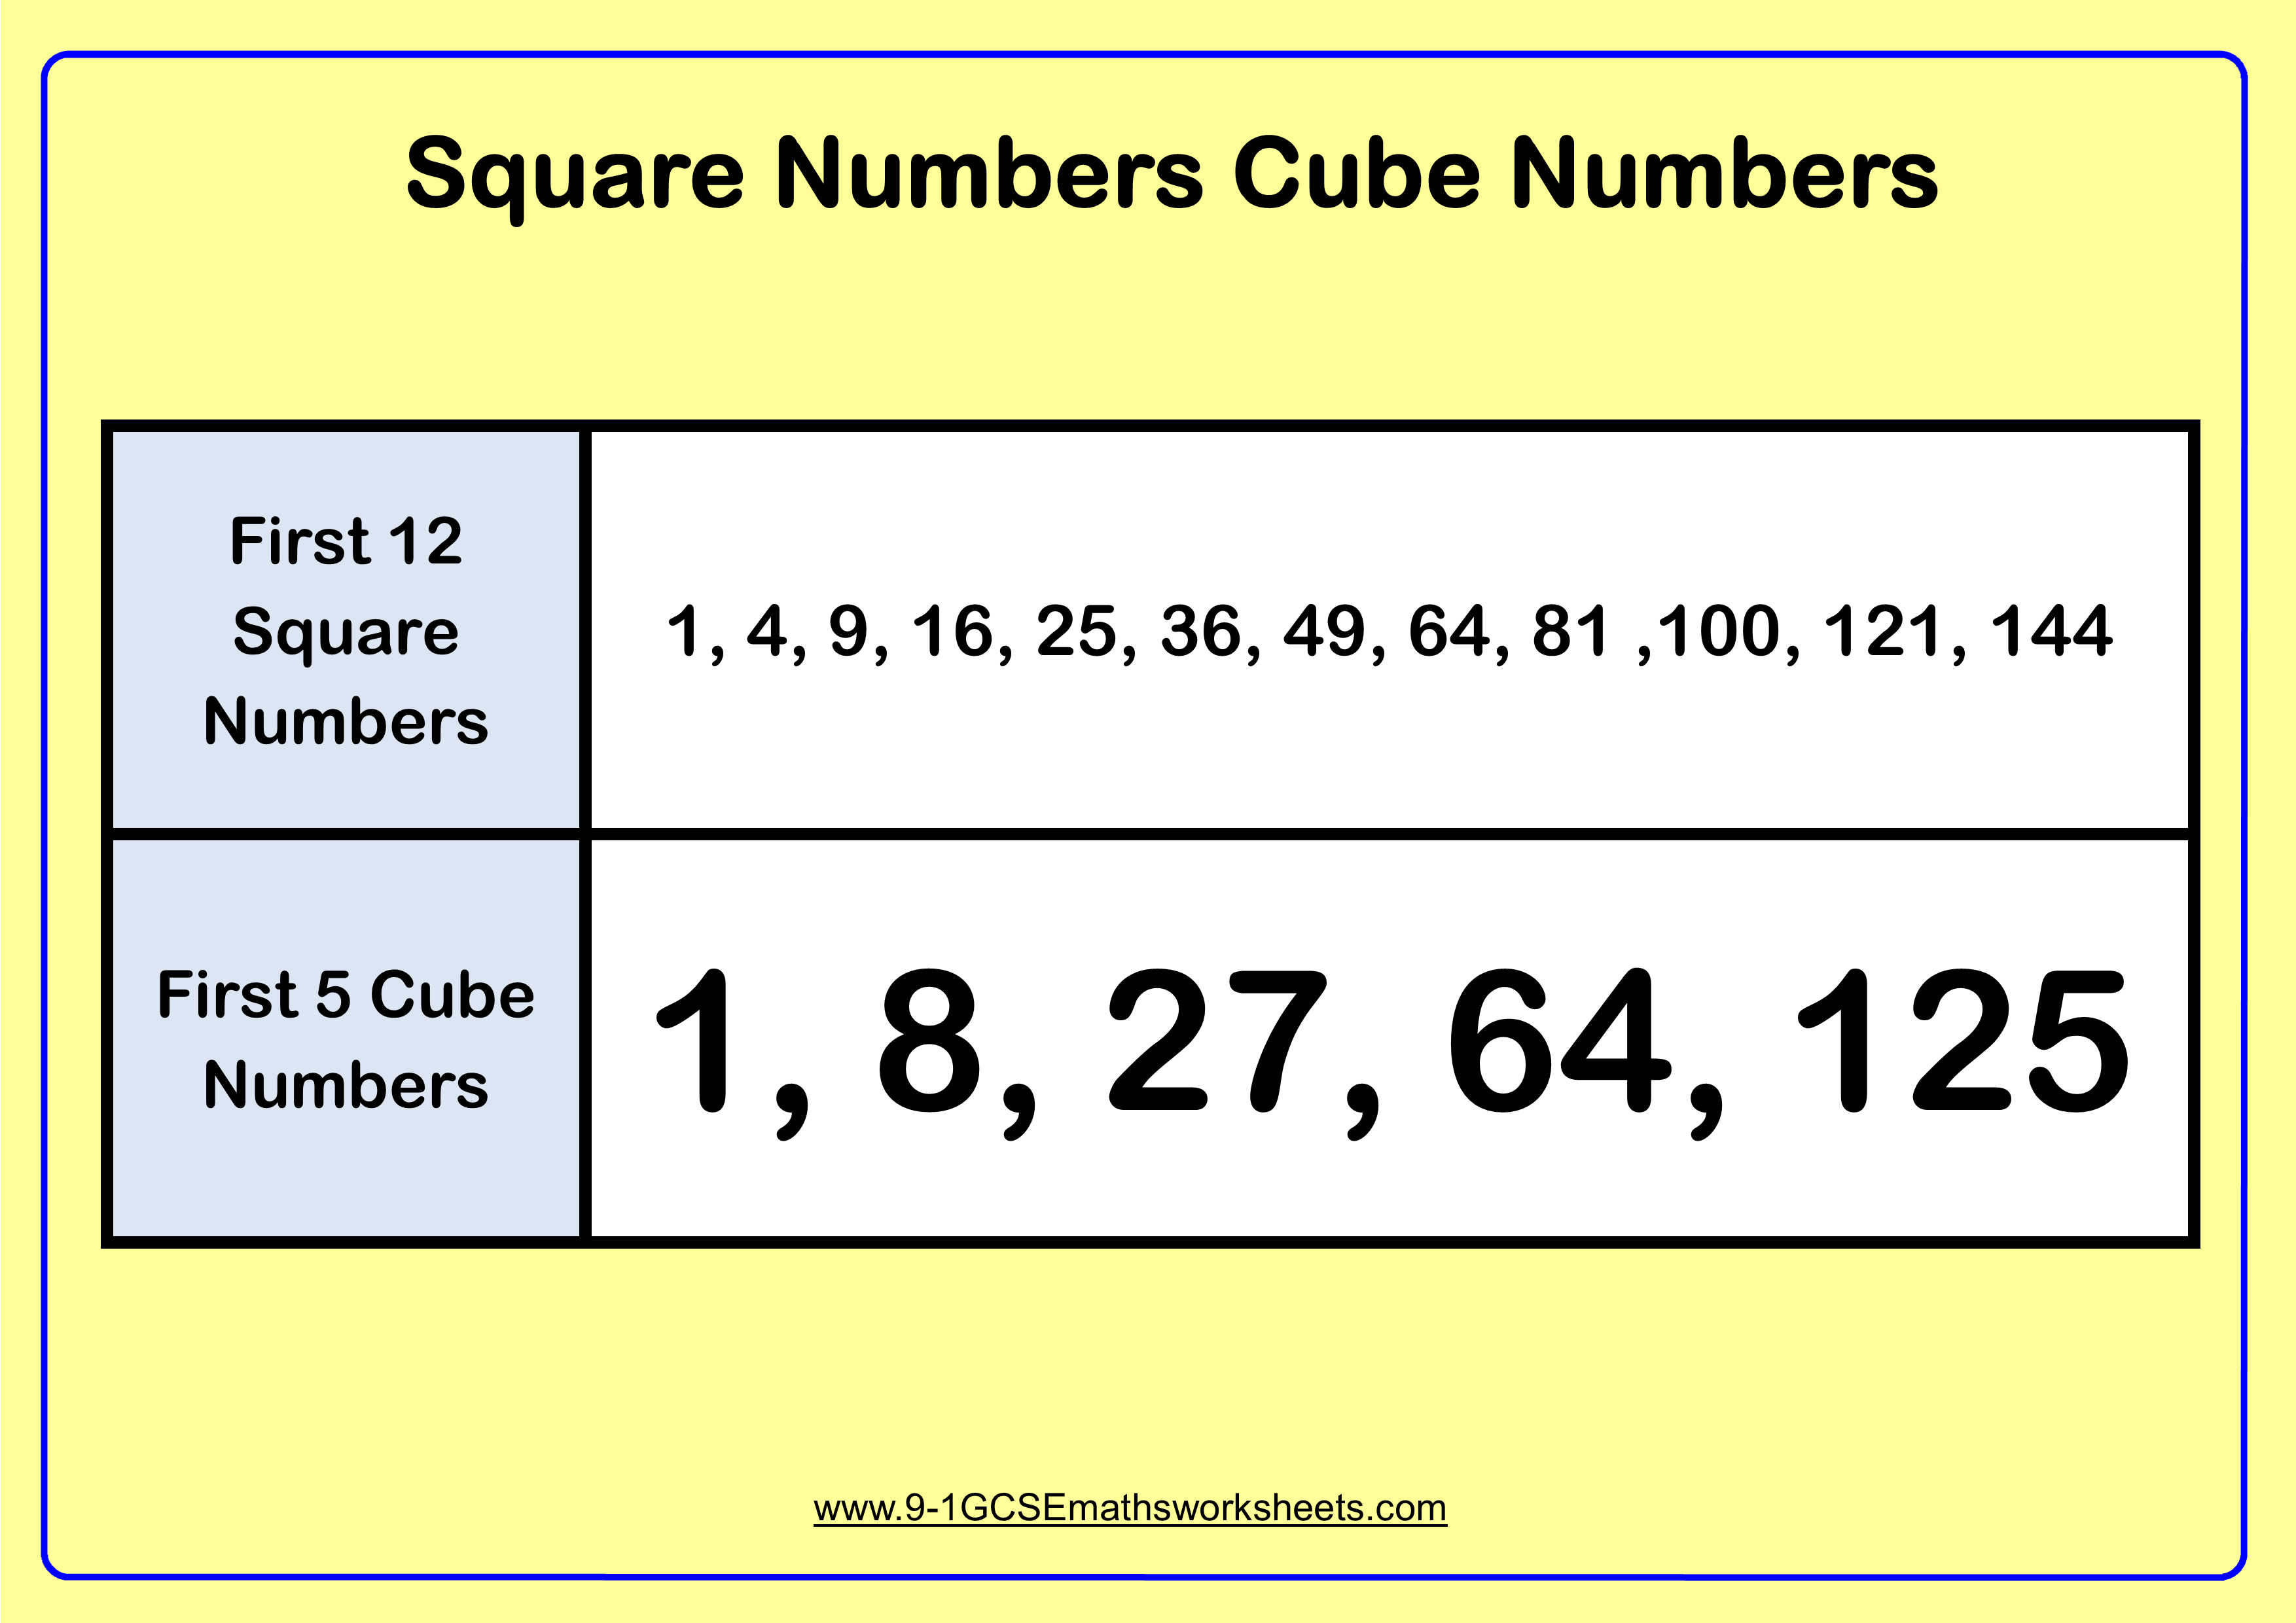 Square Numbers Cube Numbers Example With Images